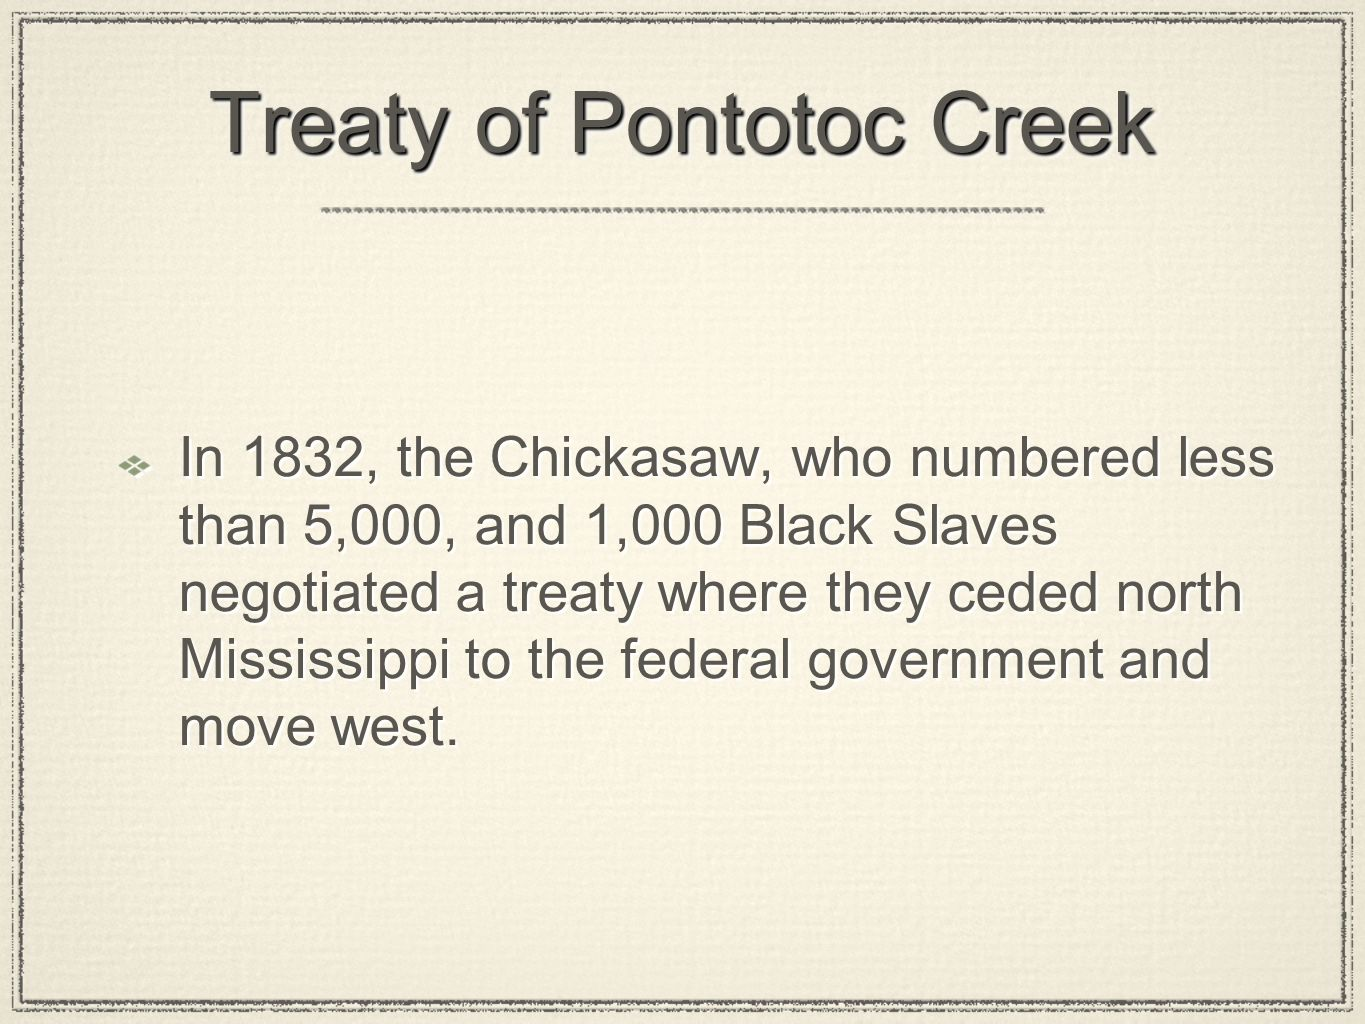 Treaty of Pontotoc Creek In 1832, the Chickasaw, who numbered less than 5,000, and 1,000 Black Slaves negotiated a treaty where they ceded north Missi